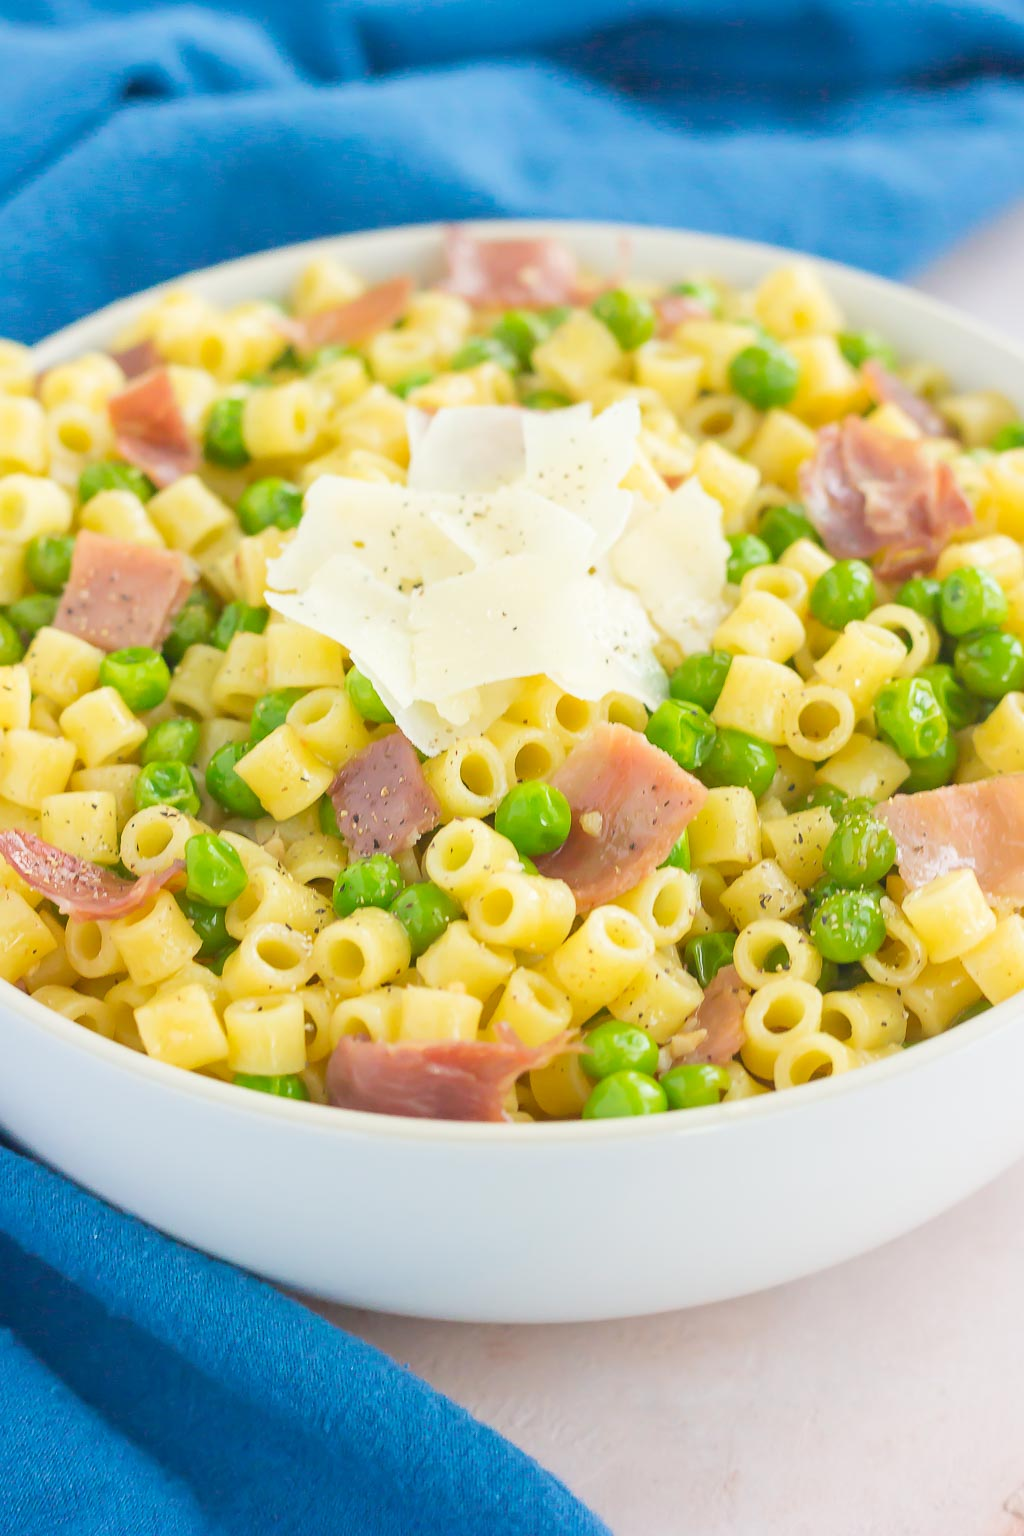 Garlic Butter Pasta with Prosciutto and Peas is a simple dish that's ready in less than 30 minutes. Filled with tender pasta, crispy prosciutto, peas, and a garlic butter sauce, this meal is packed simple ingredients and perfect for the whole family to enjoy!  #pasta #garlicpasta #butterpasta #garlicbutterpasta #prosciutto #prosciuttopasta #easydinner #dinner